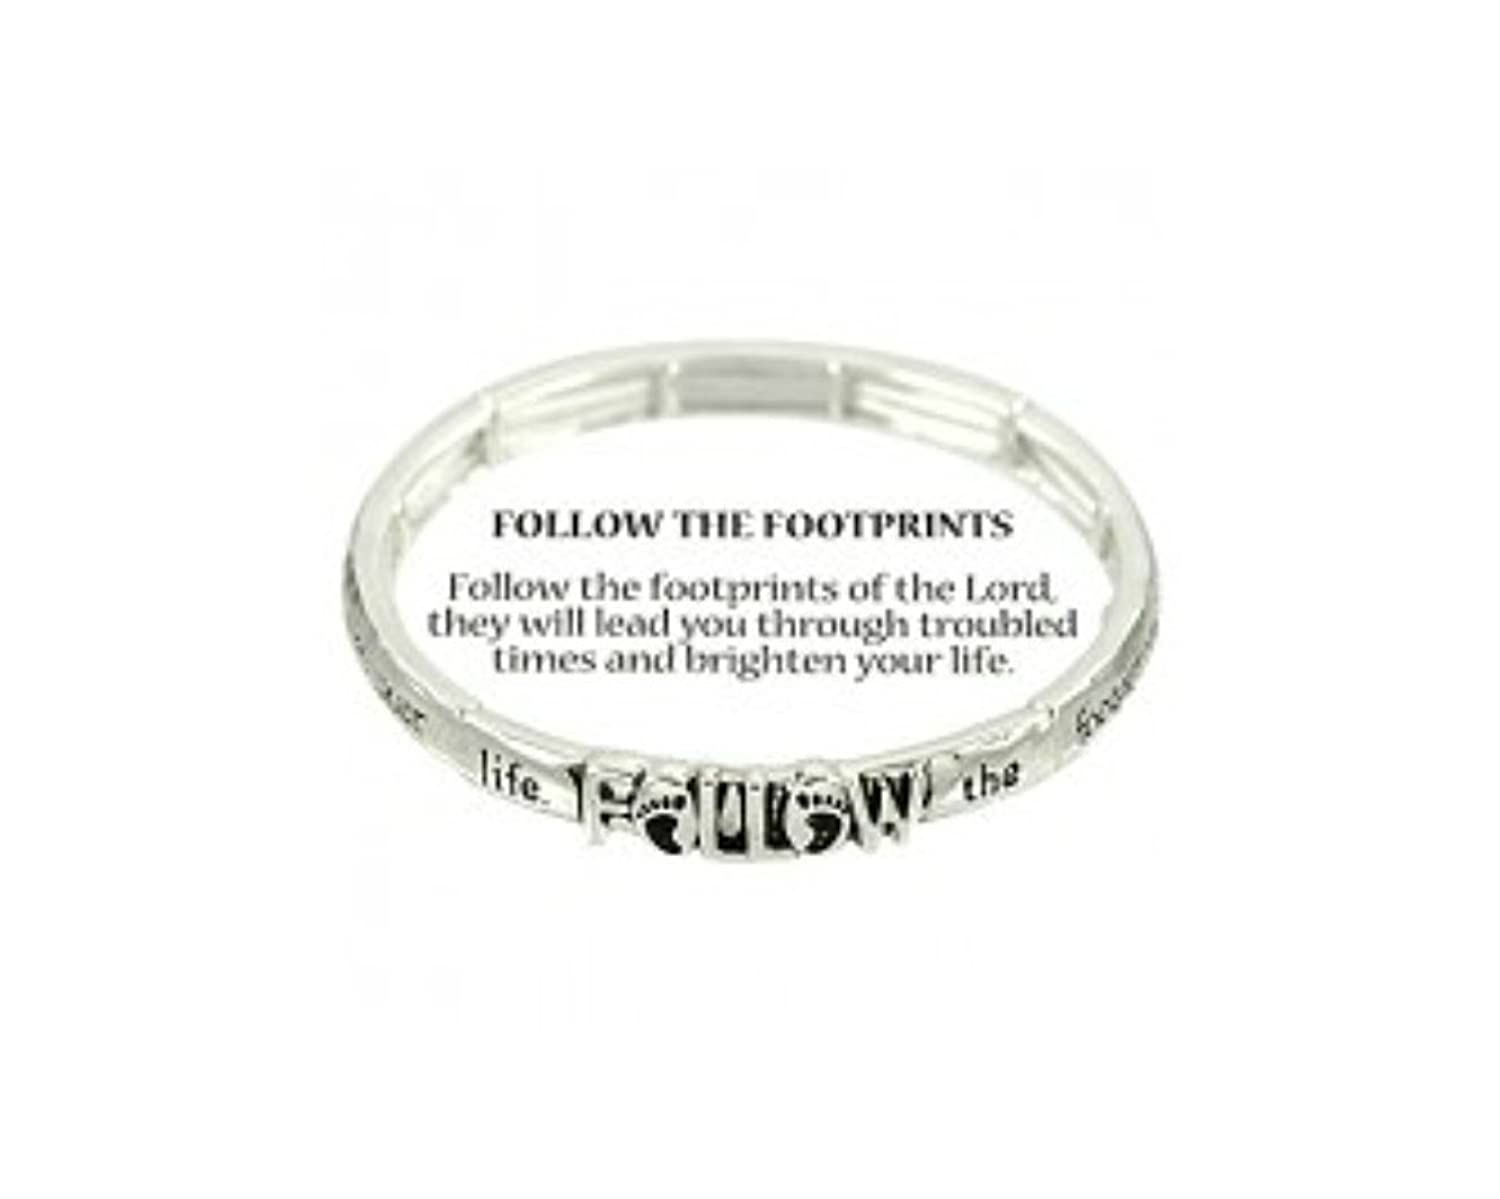 """Follow the Footprints"" Religious Inspirational Engraved Hammered Silver-tone Stretch Bracelet By Athena Brand"